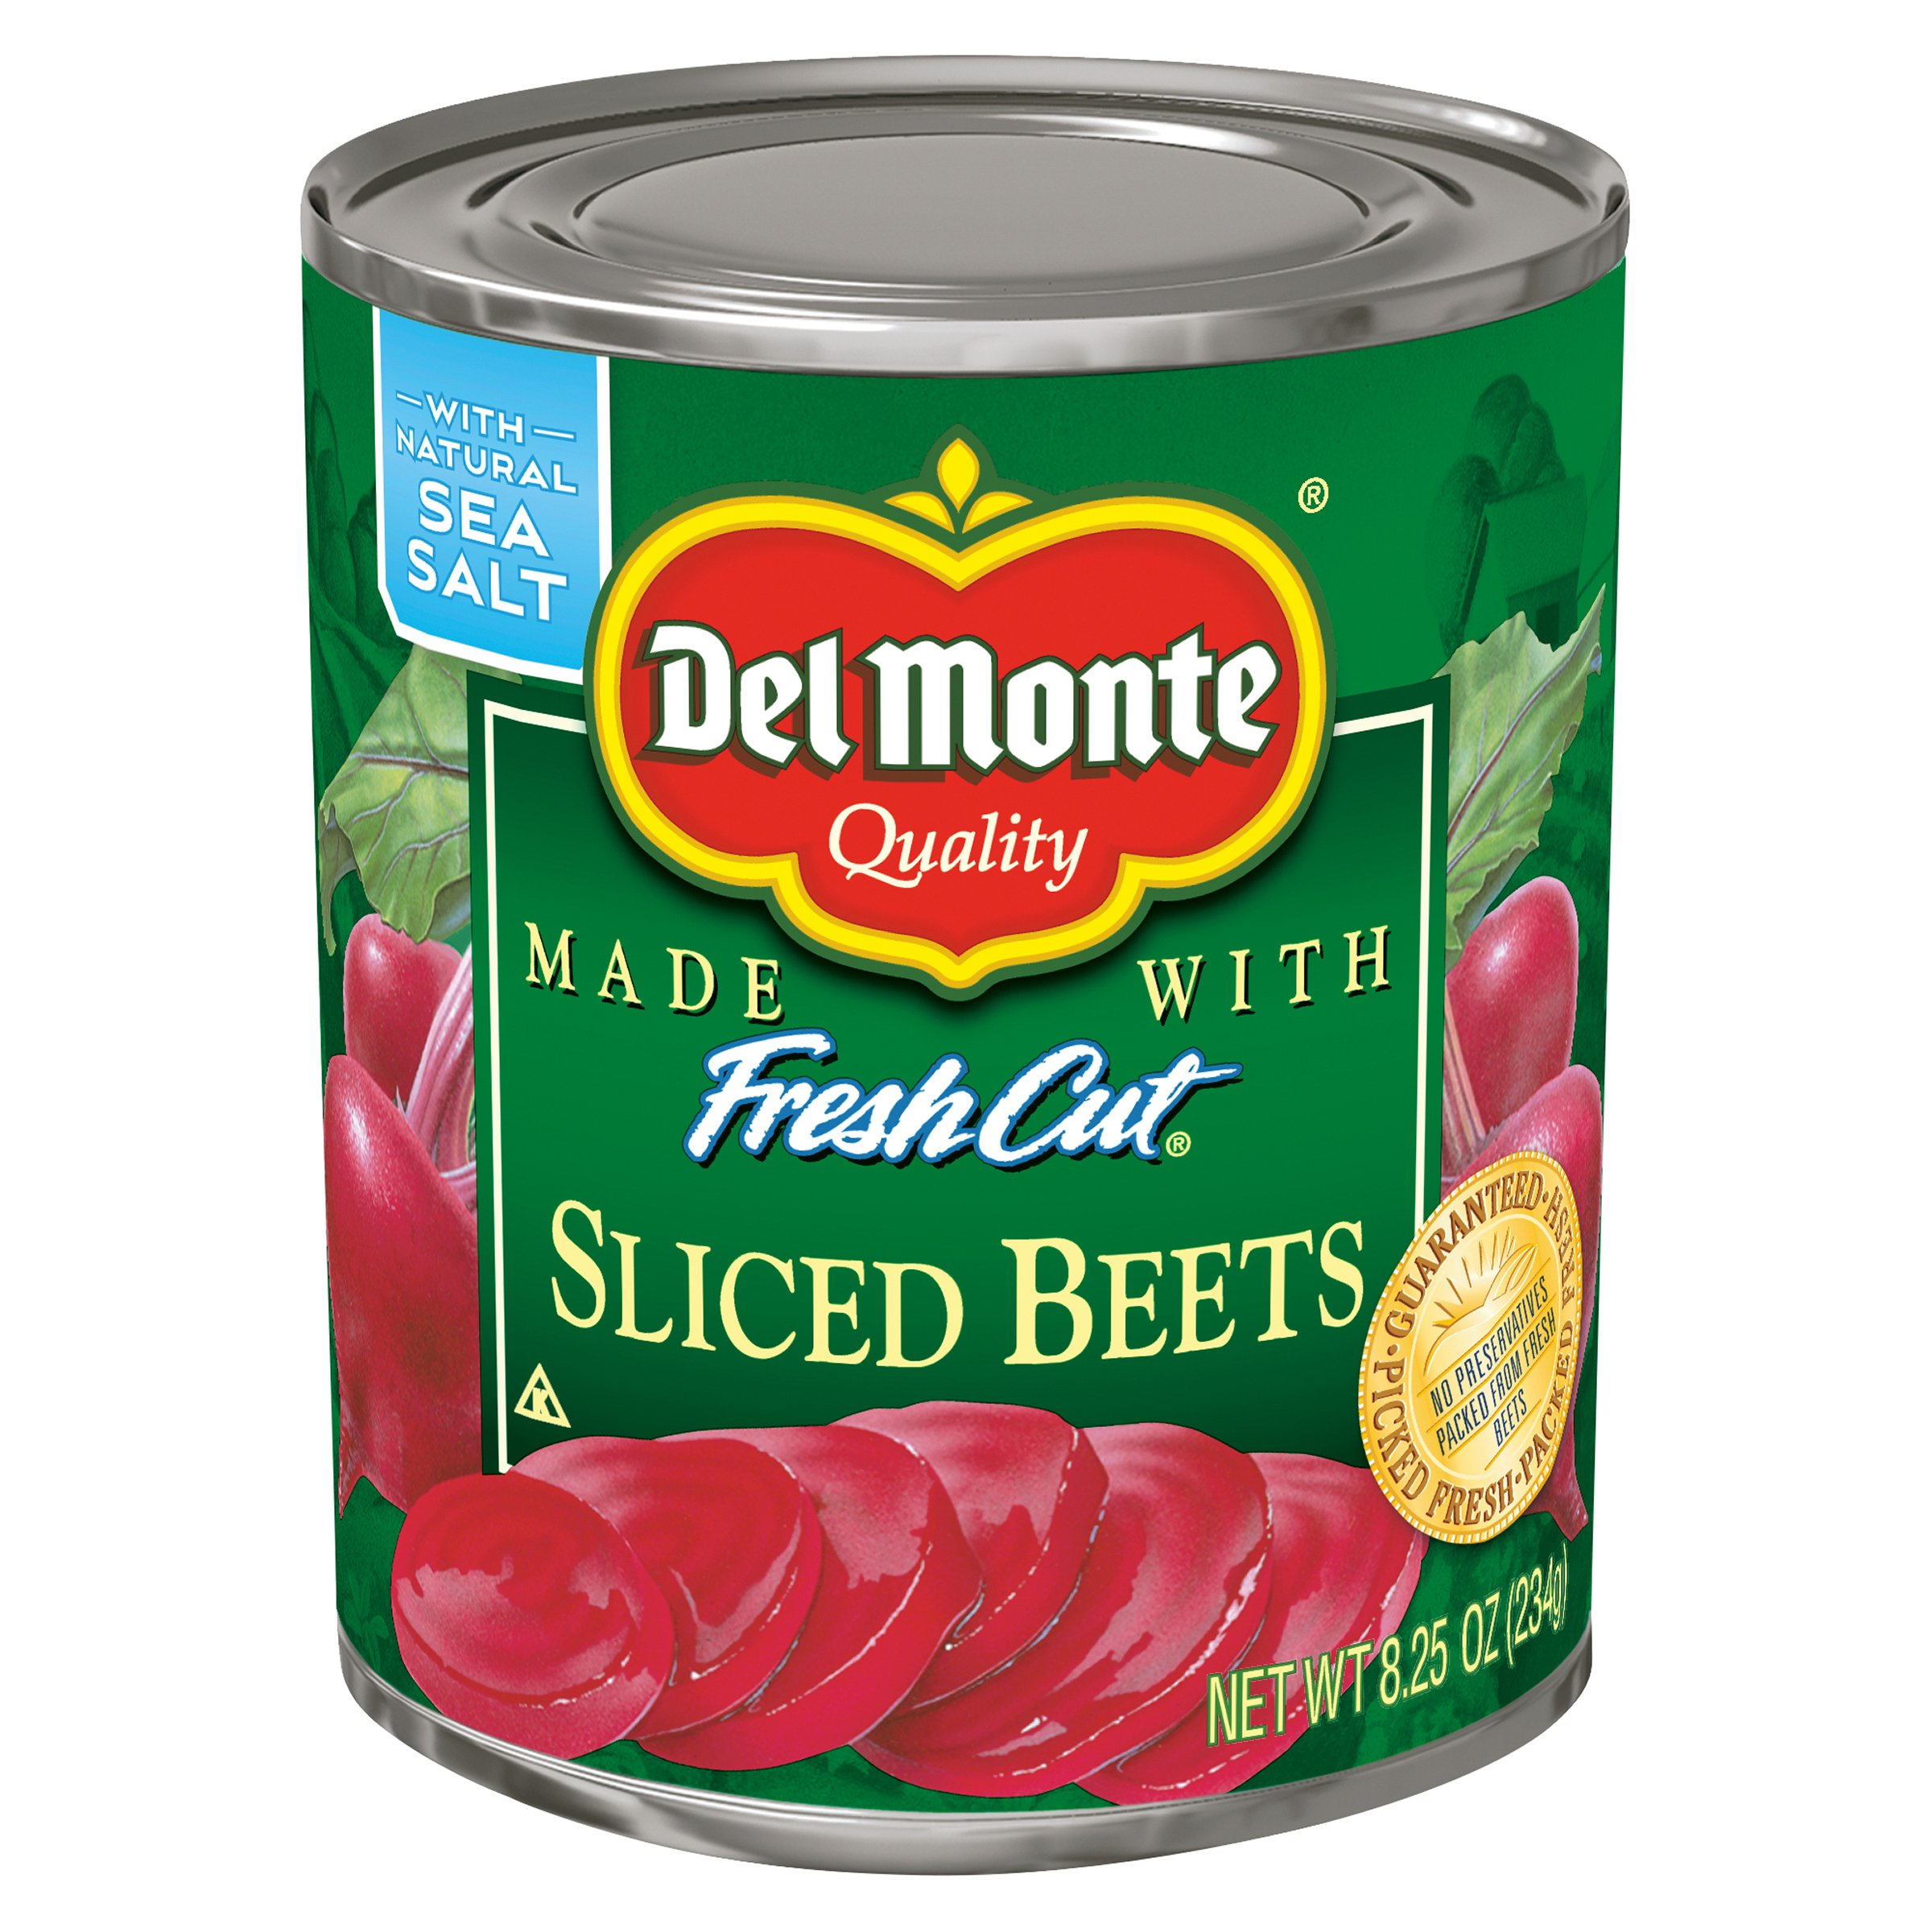 Del Monte Canned Sliced Beets